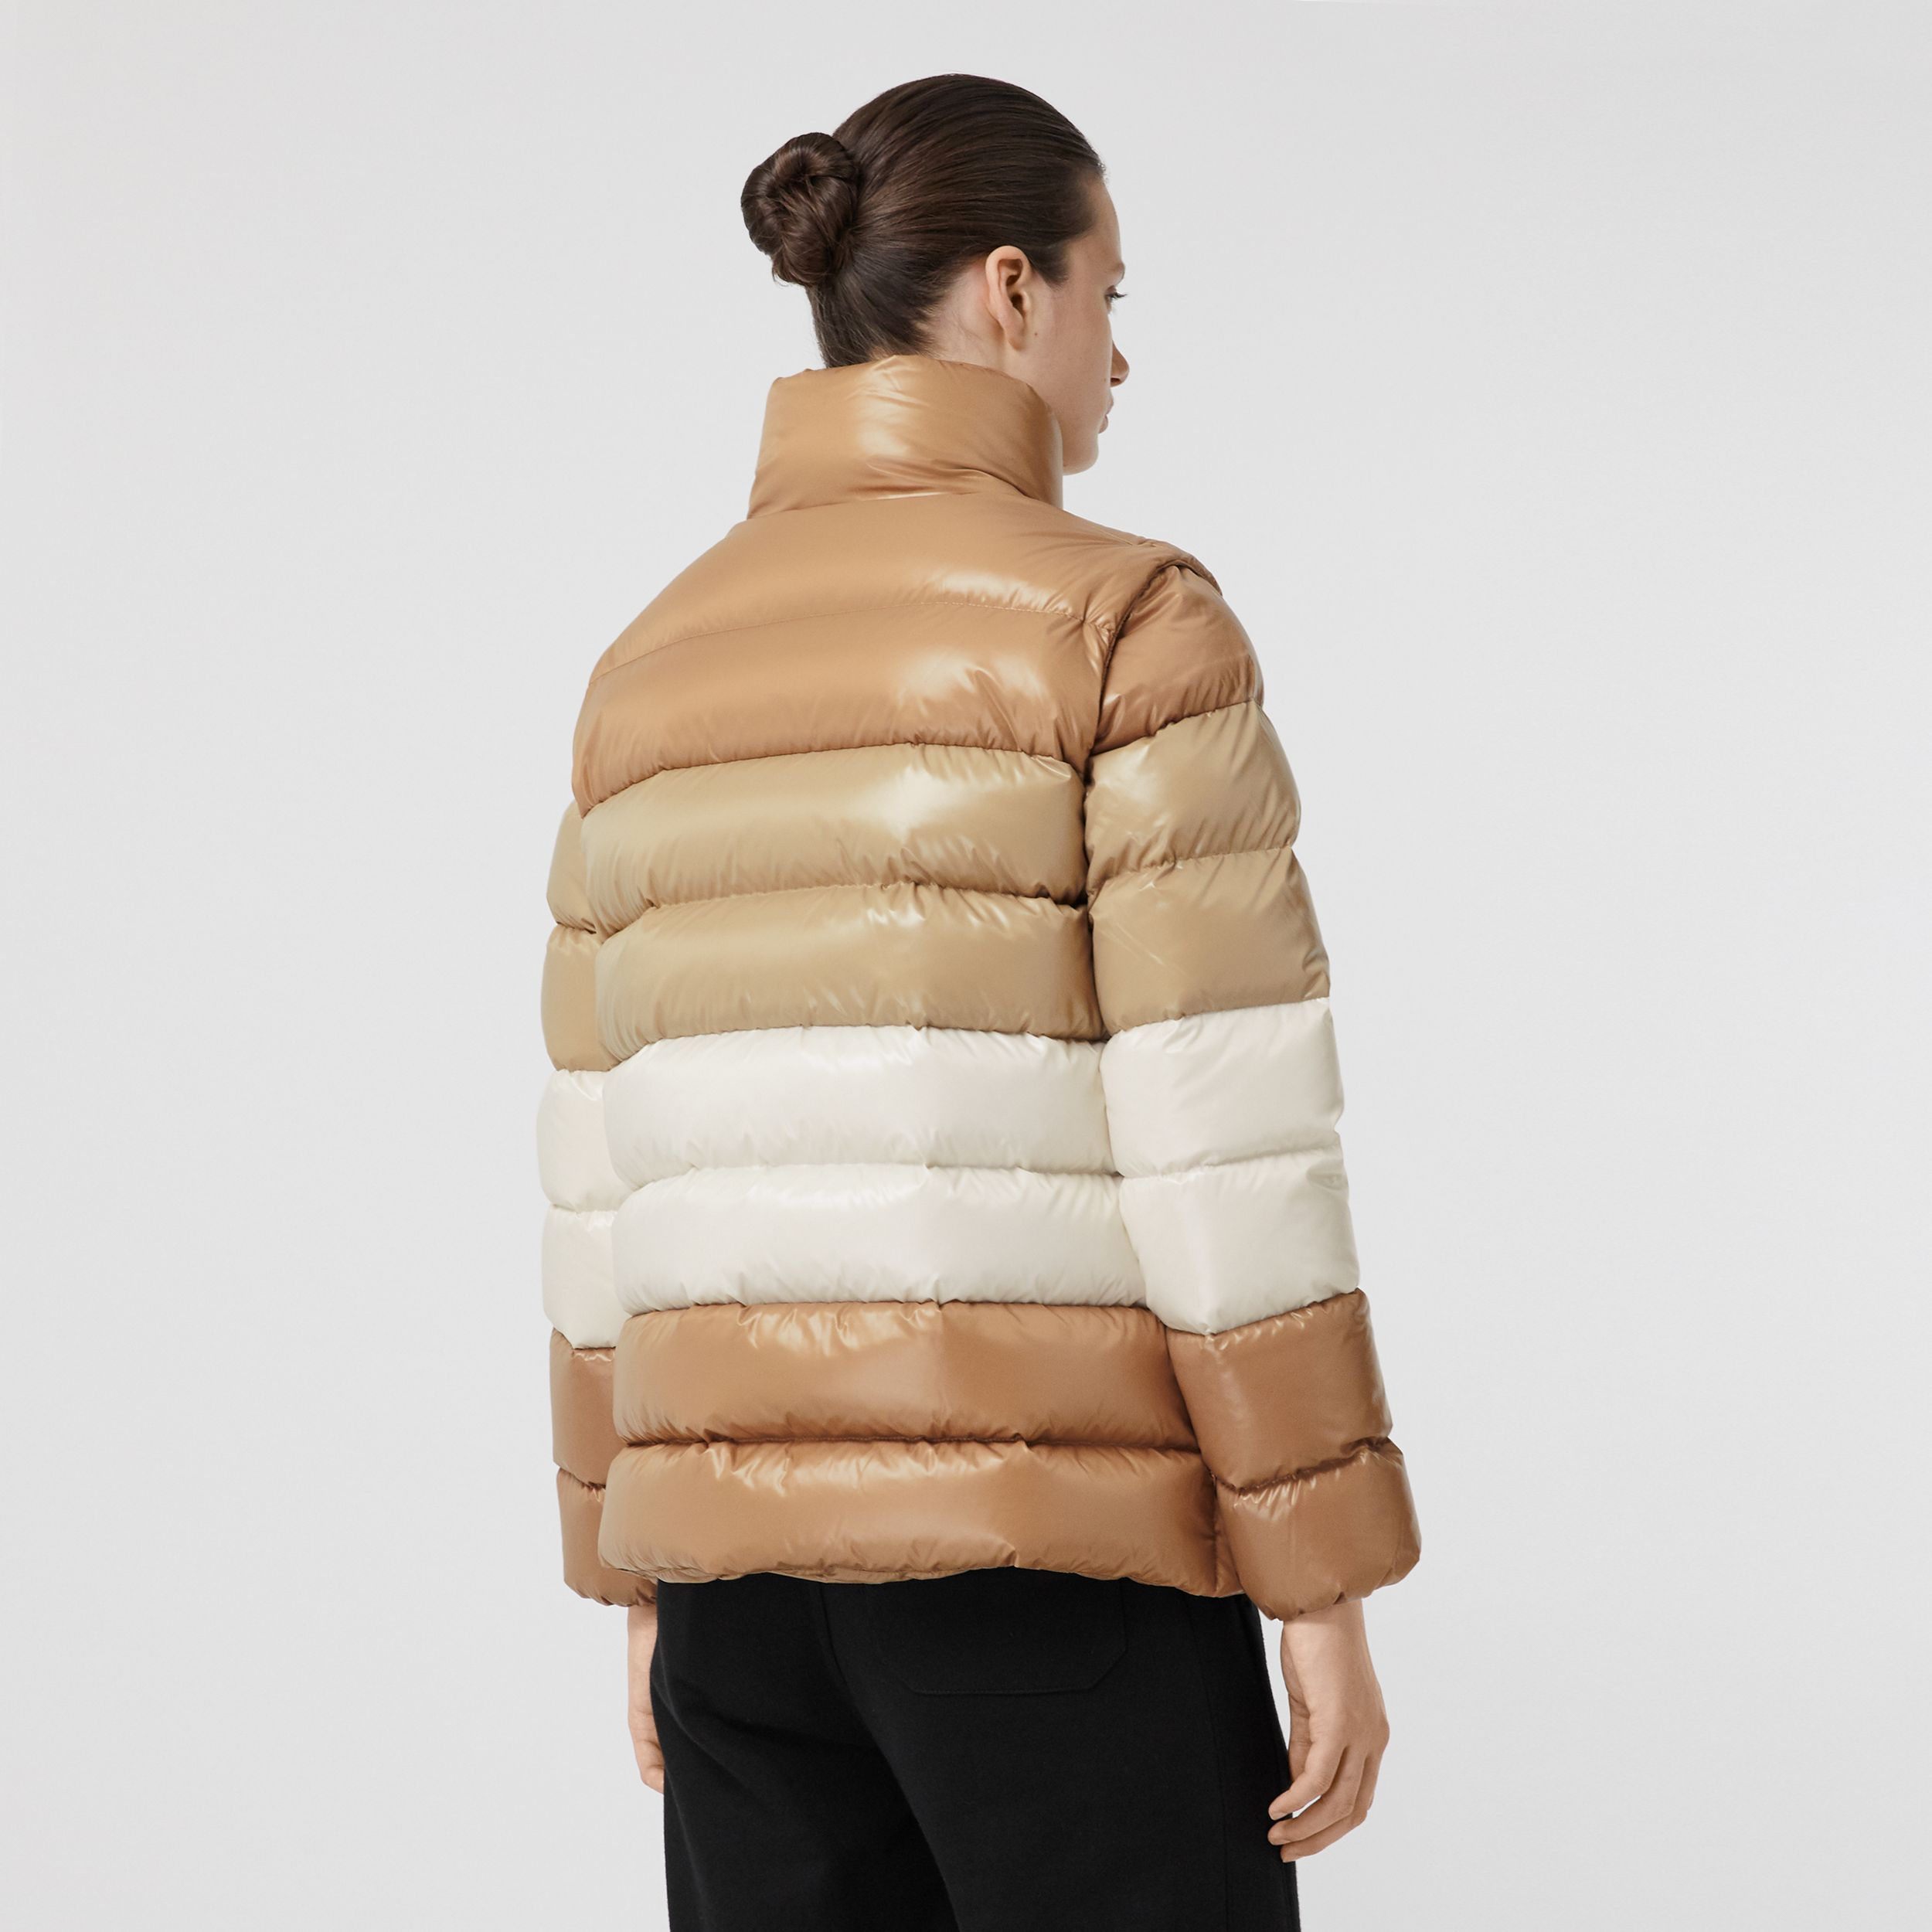 Panelled Nylon Puffer Jacket with Detachable Sleeves in Soft Camel - Women | Burberry - 3